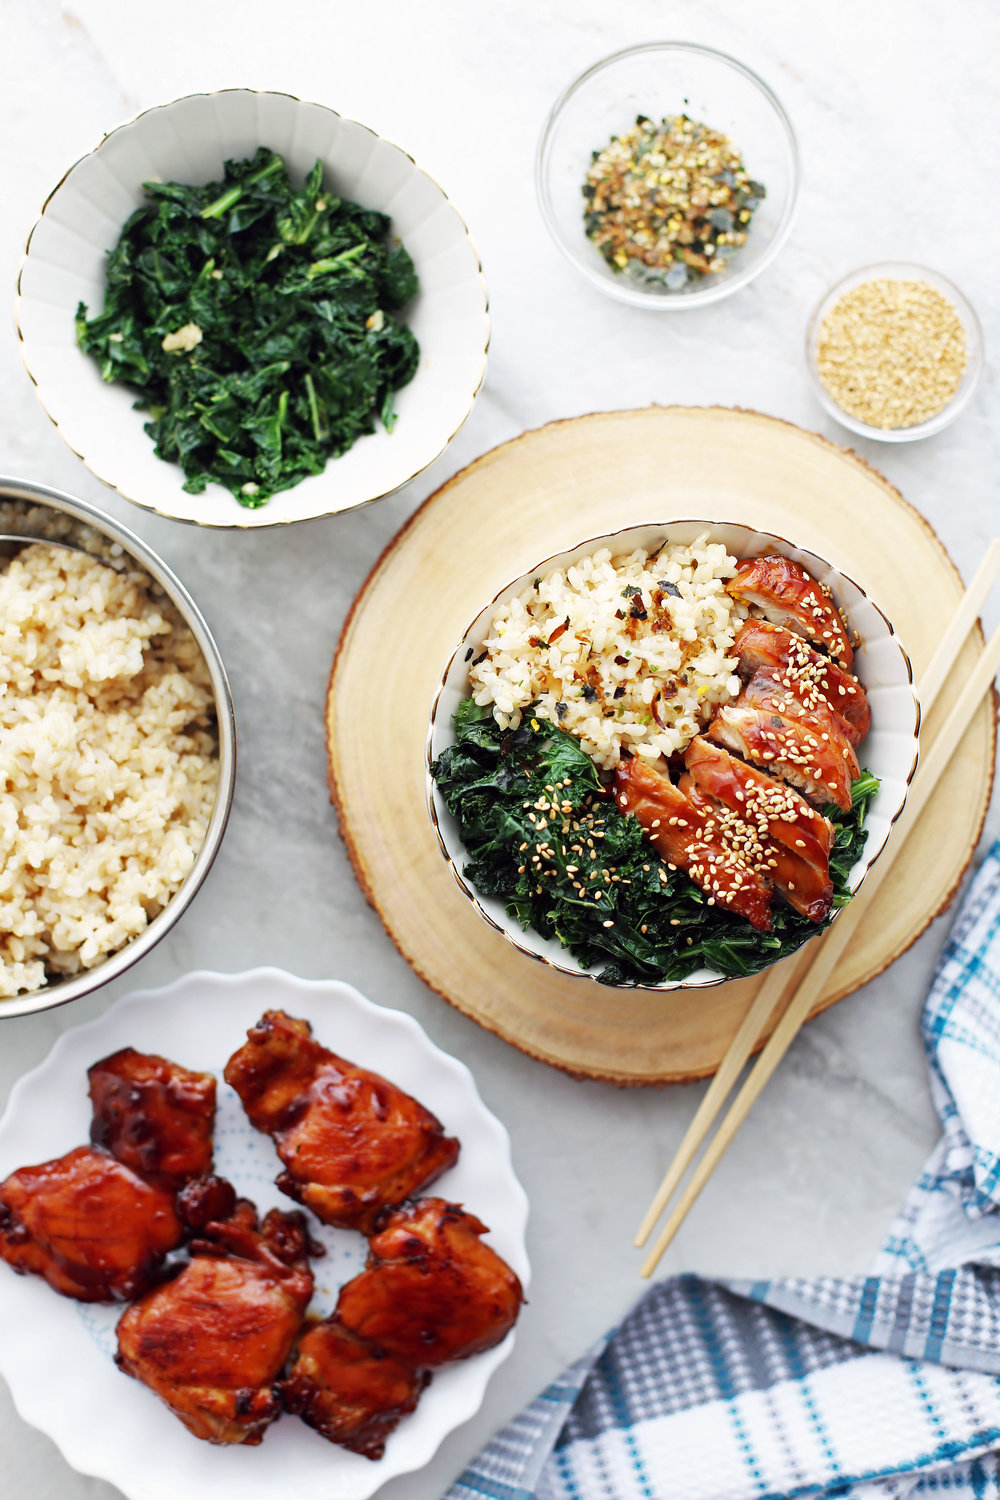 Overhead shot of a bowl of teriyaki chicken with garlicky kale and brown rice, a plate of teriyaki chicken thighs, a bowl of brown rice, and seasonings.